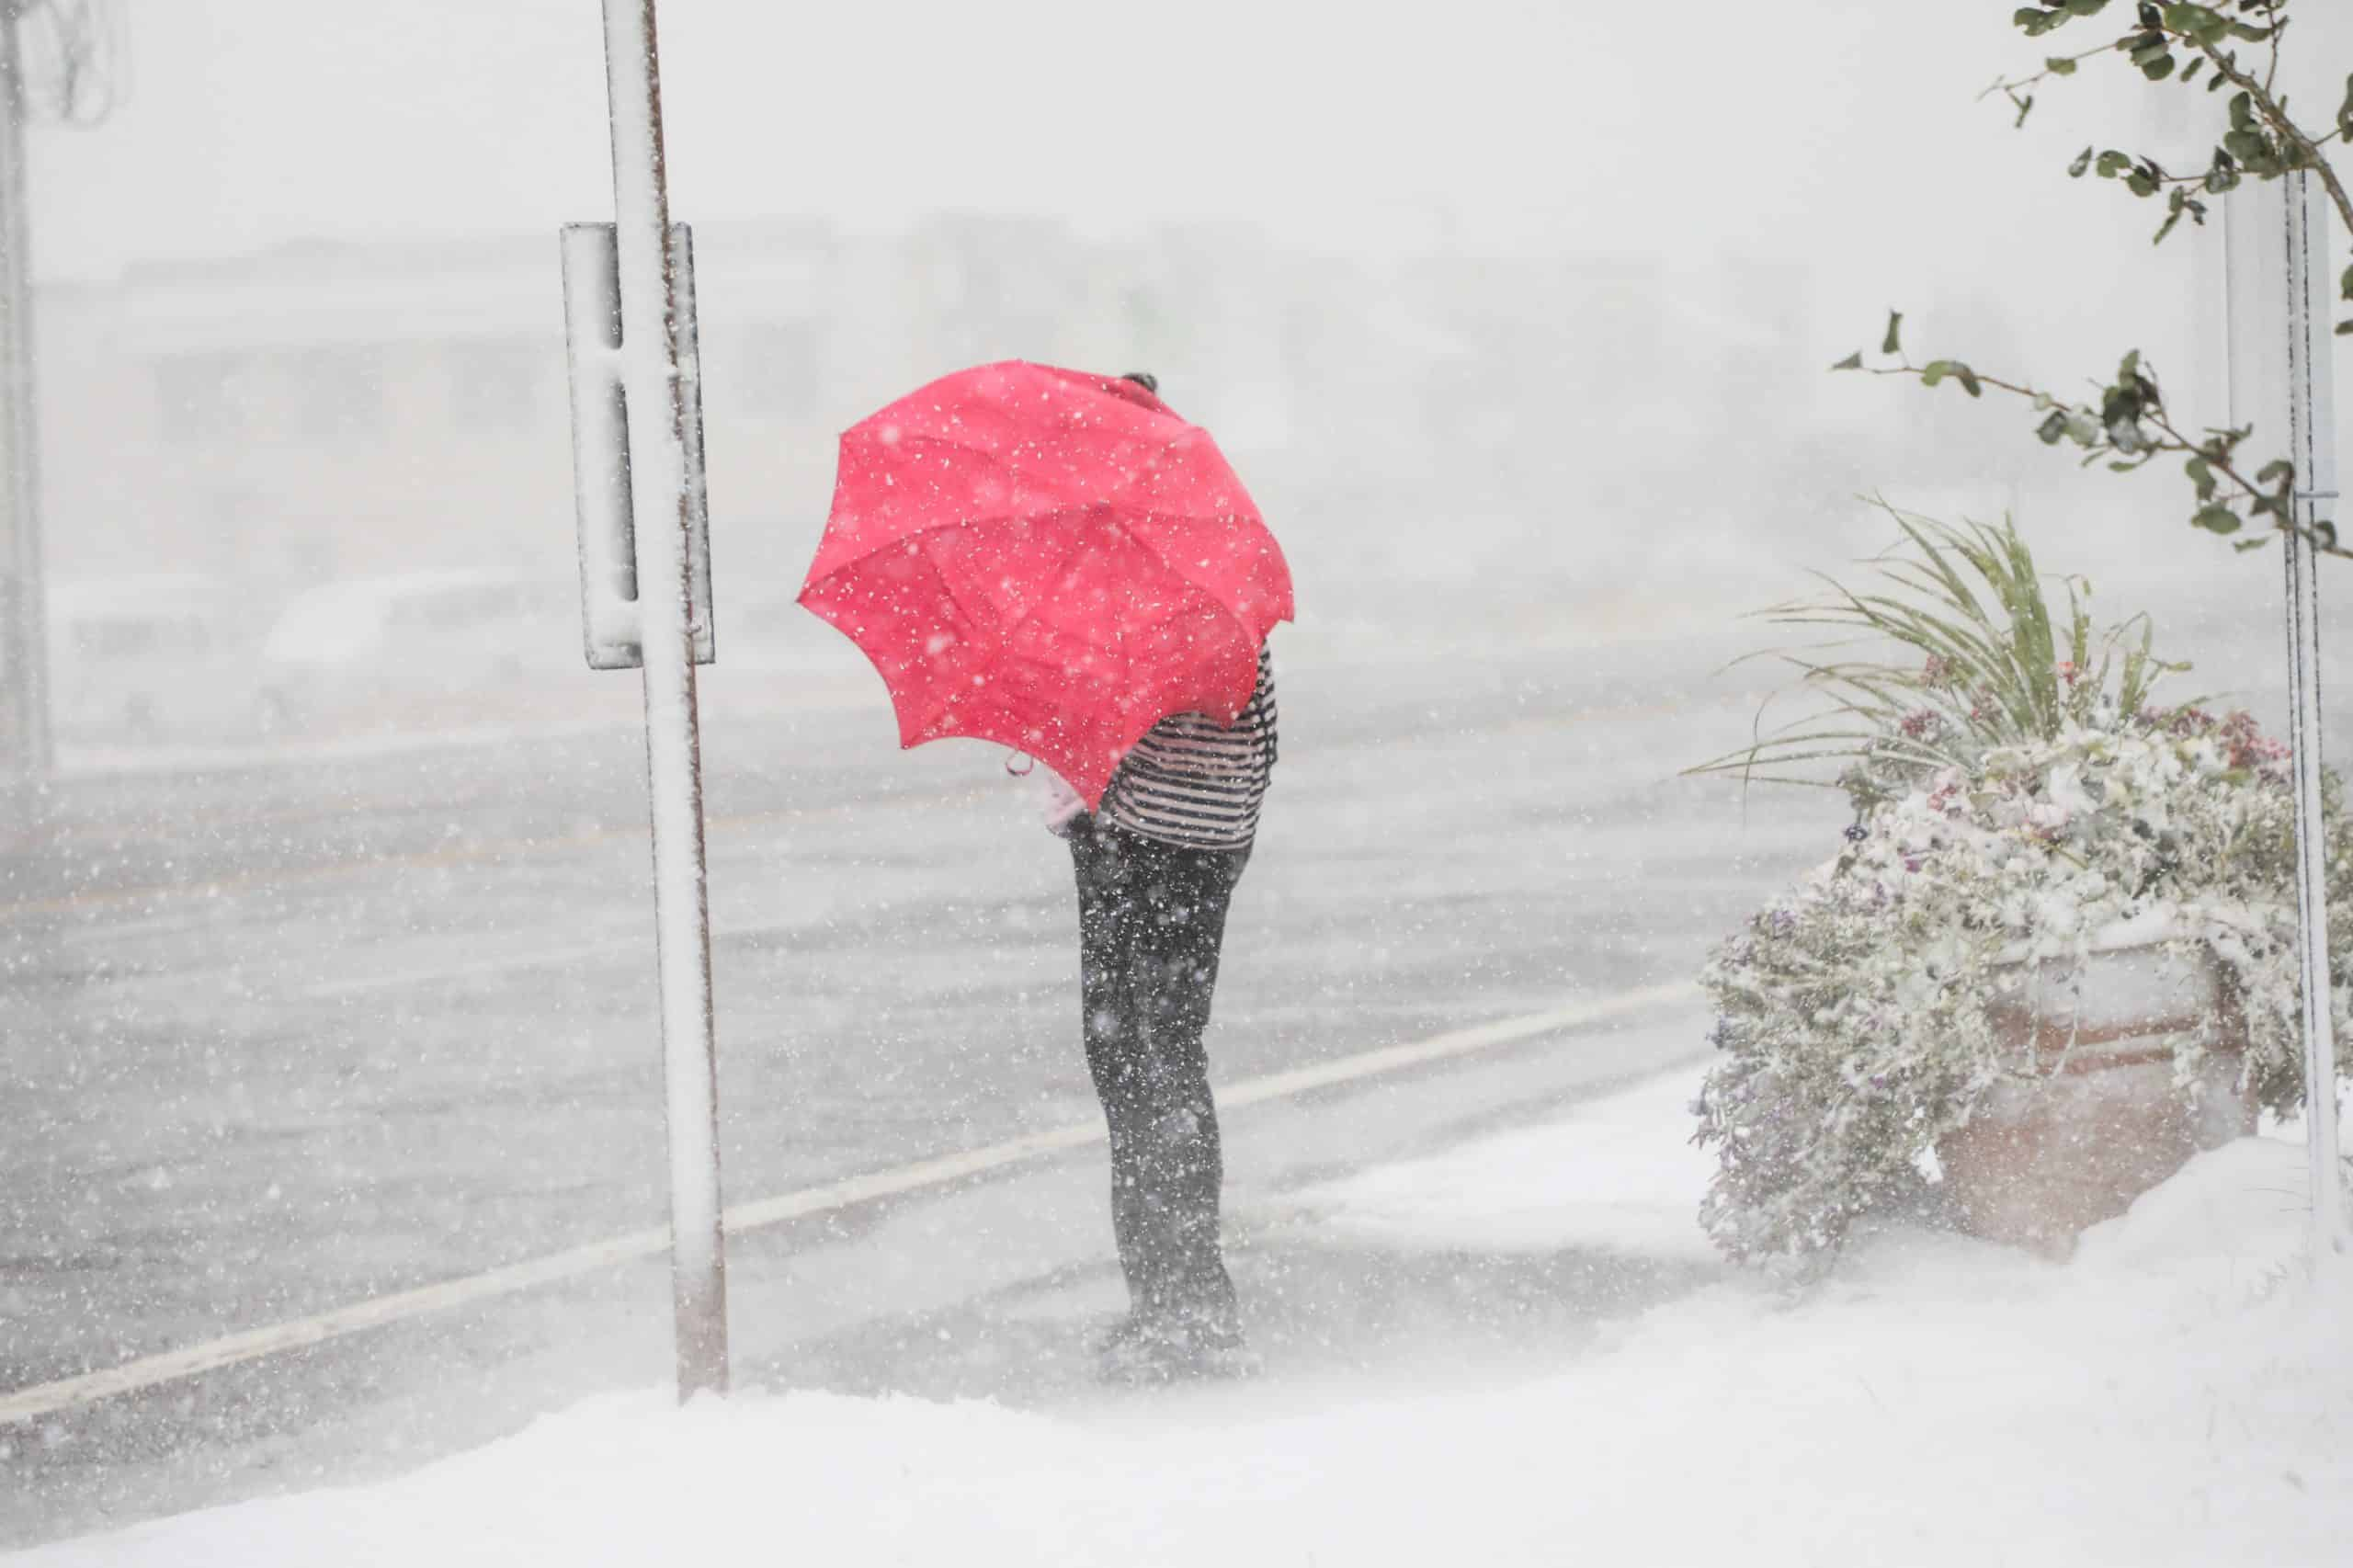 Winter Storm Warning issued for Vail, surrounding area